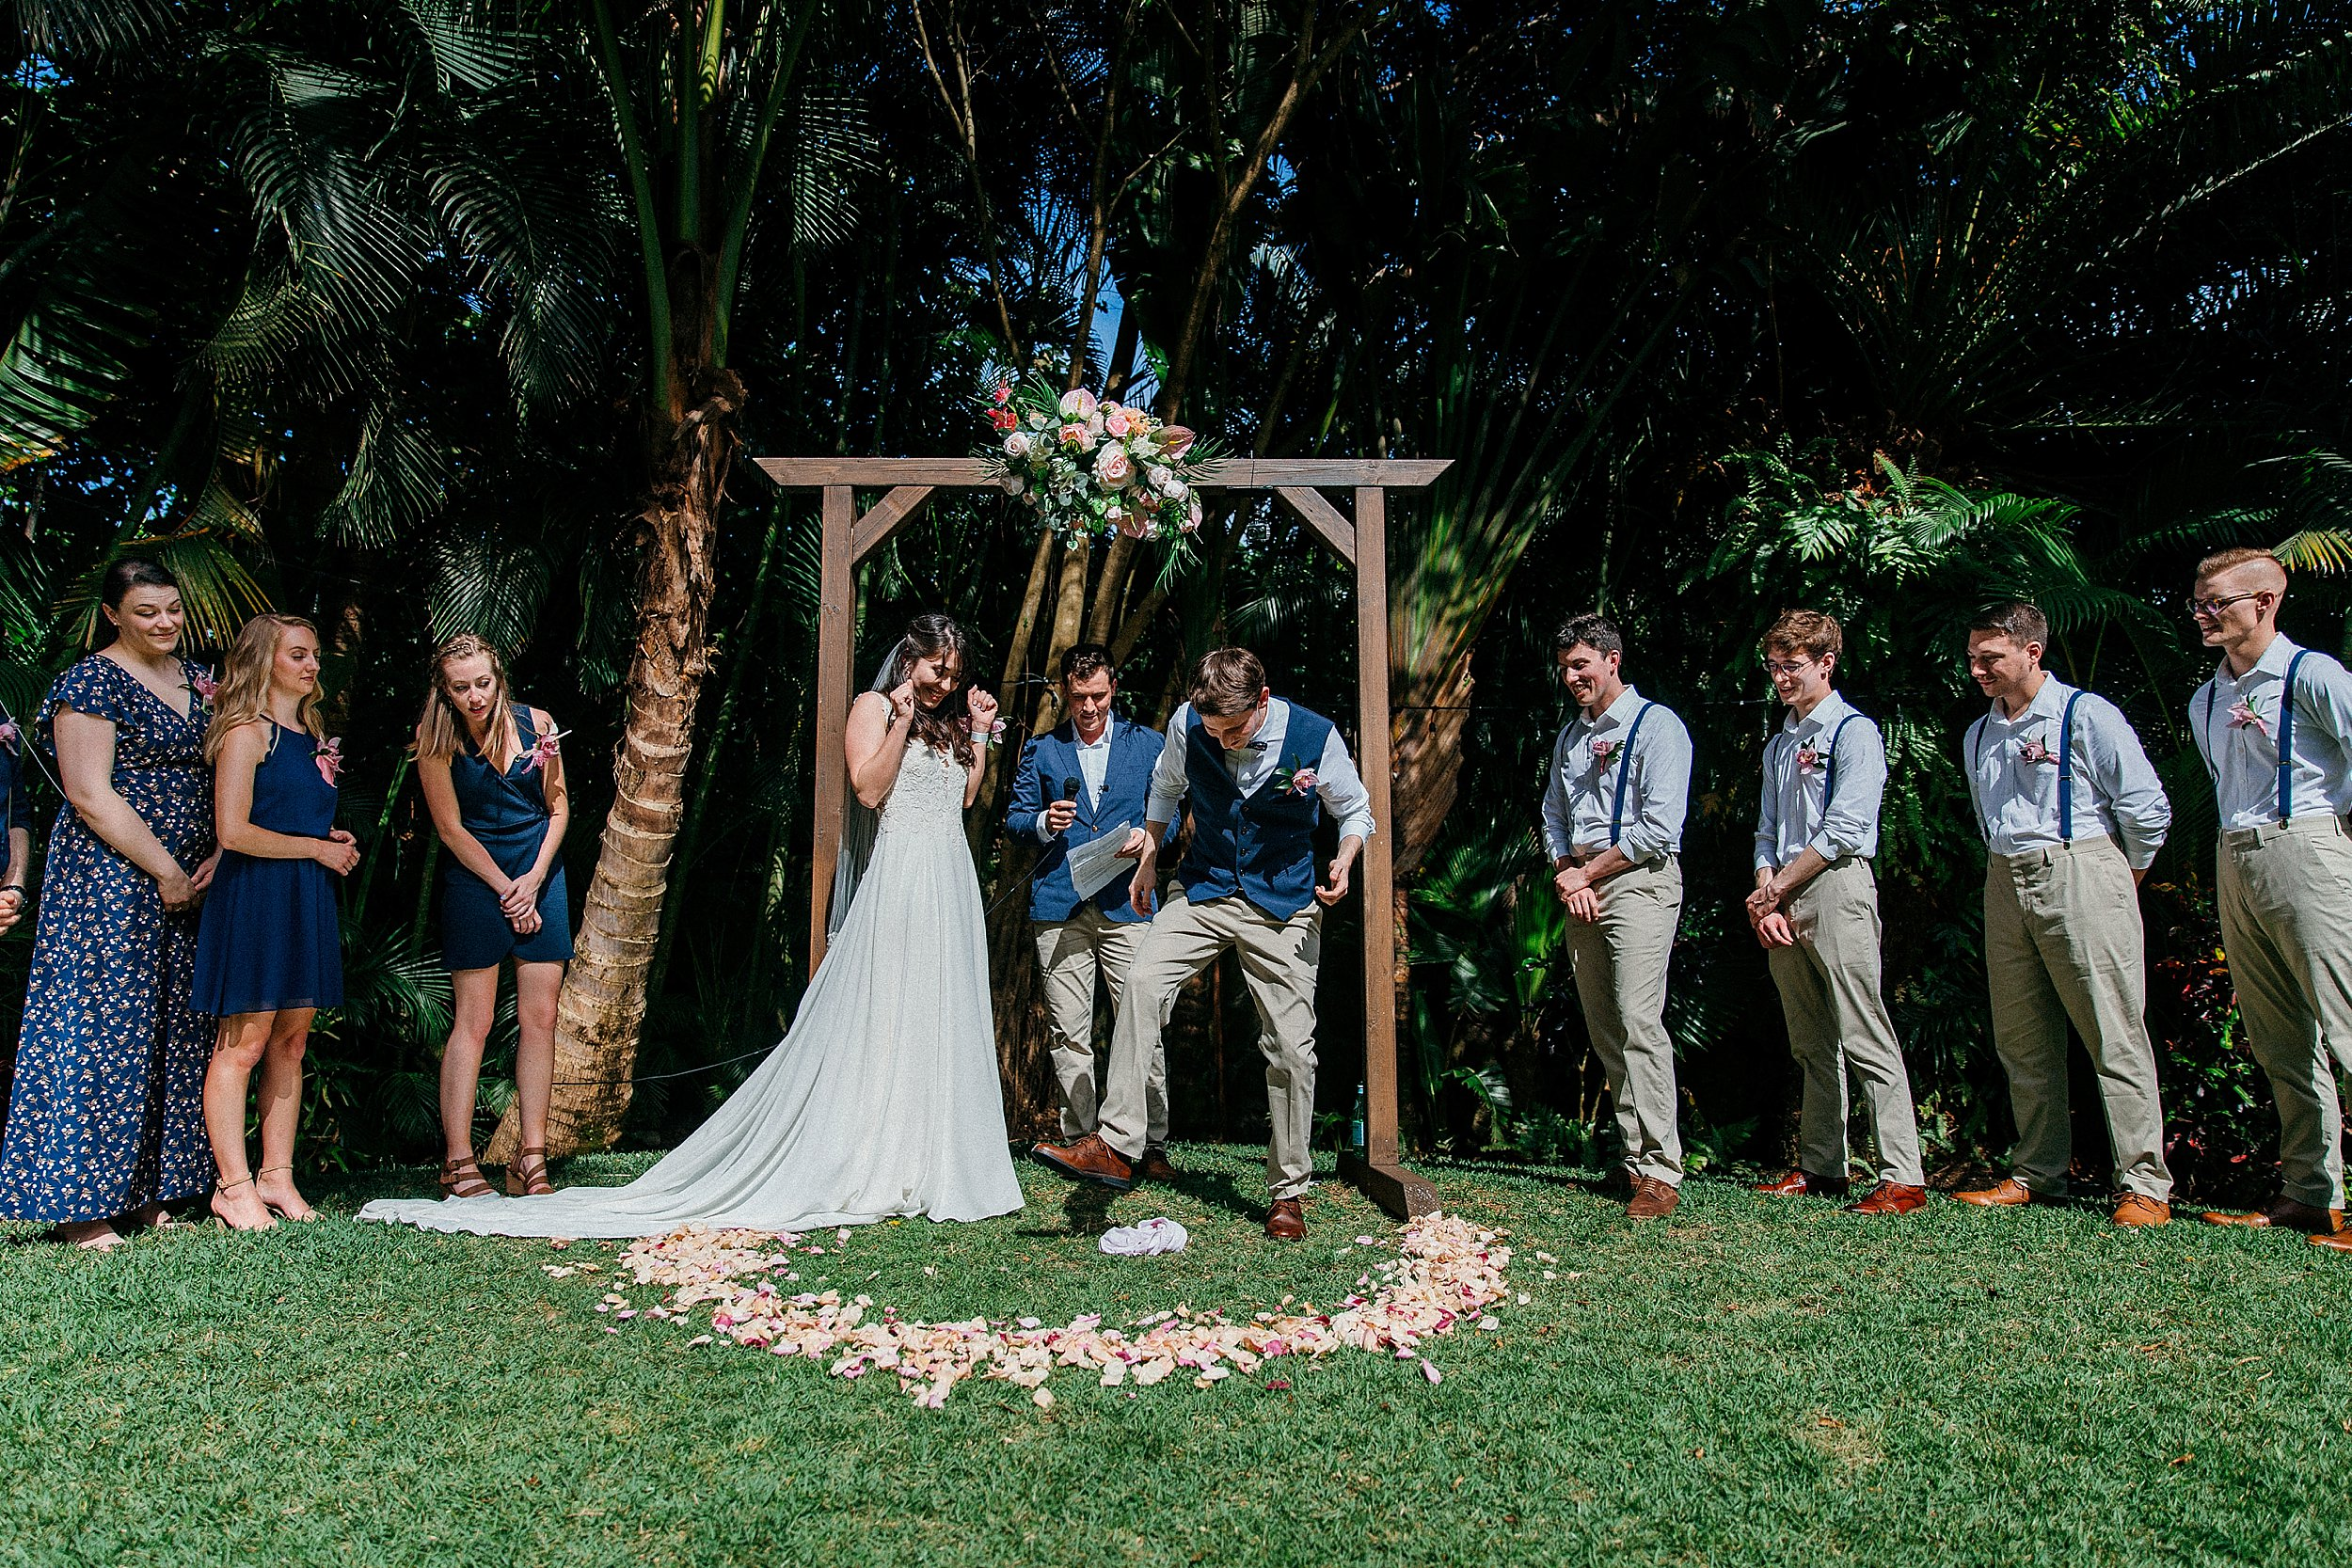 Nikki & Jarred marriage vows in the backyard at Hale Koa in Hawaii with their UD friends and family surrounding them.